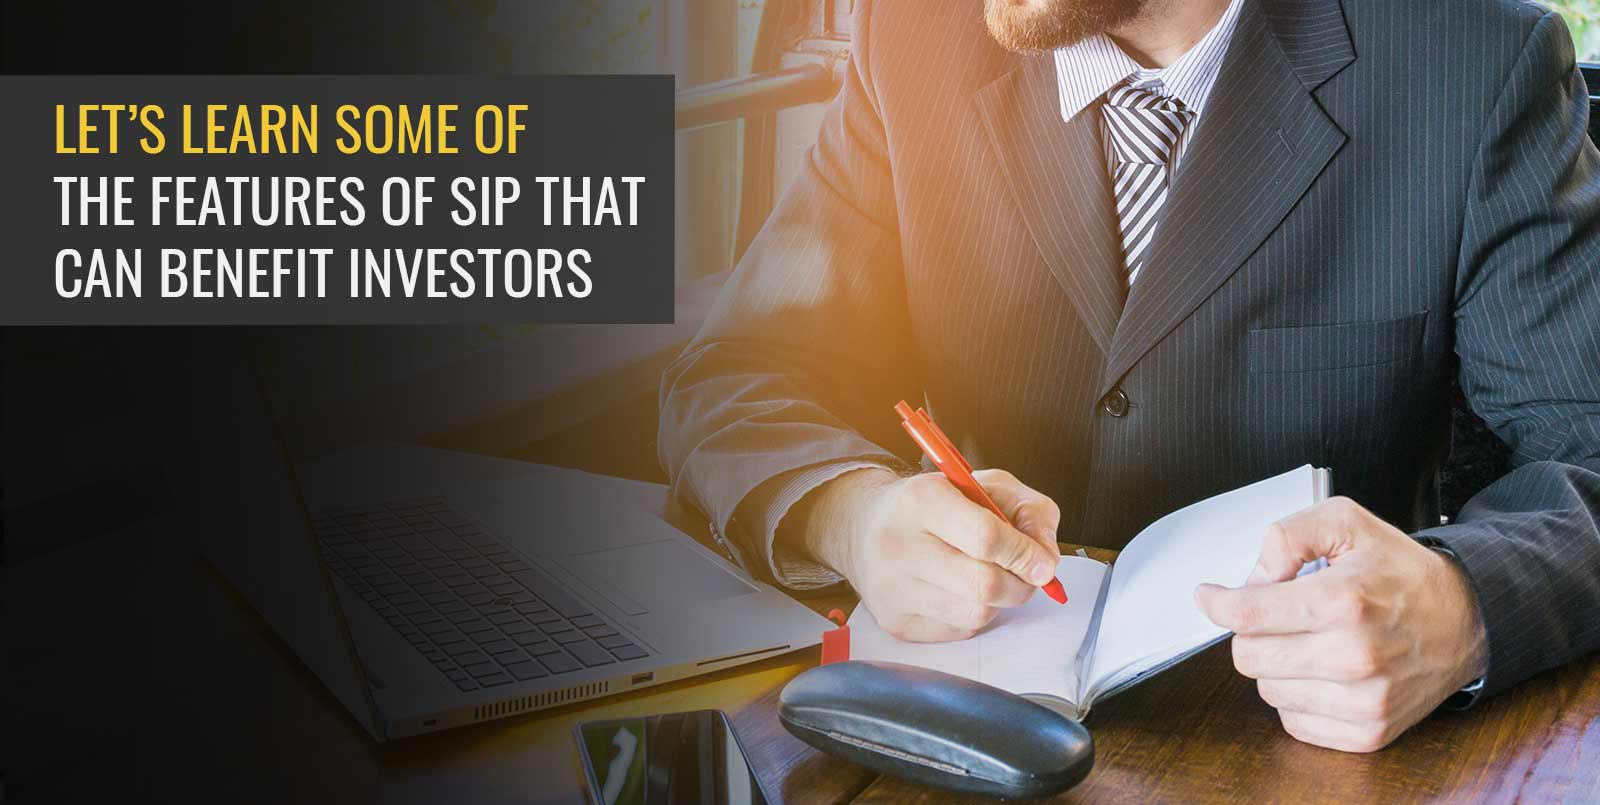 LET'S LEARN SOME OF THE FEATURES OF SIP THAT CAN BENEFIT INVESTORS